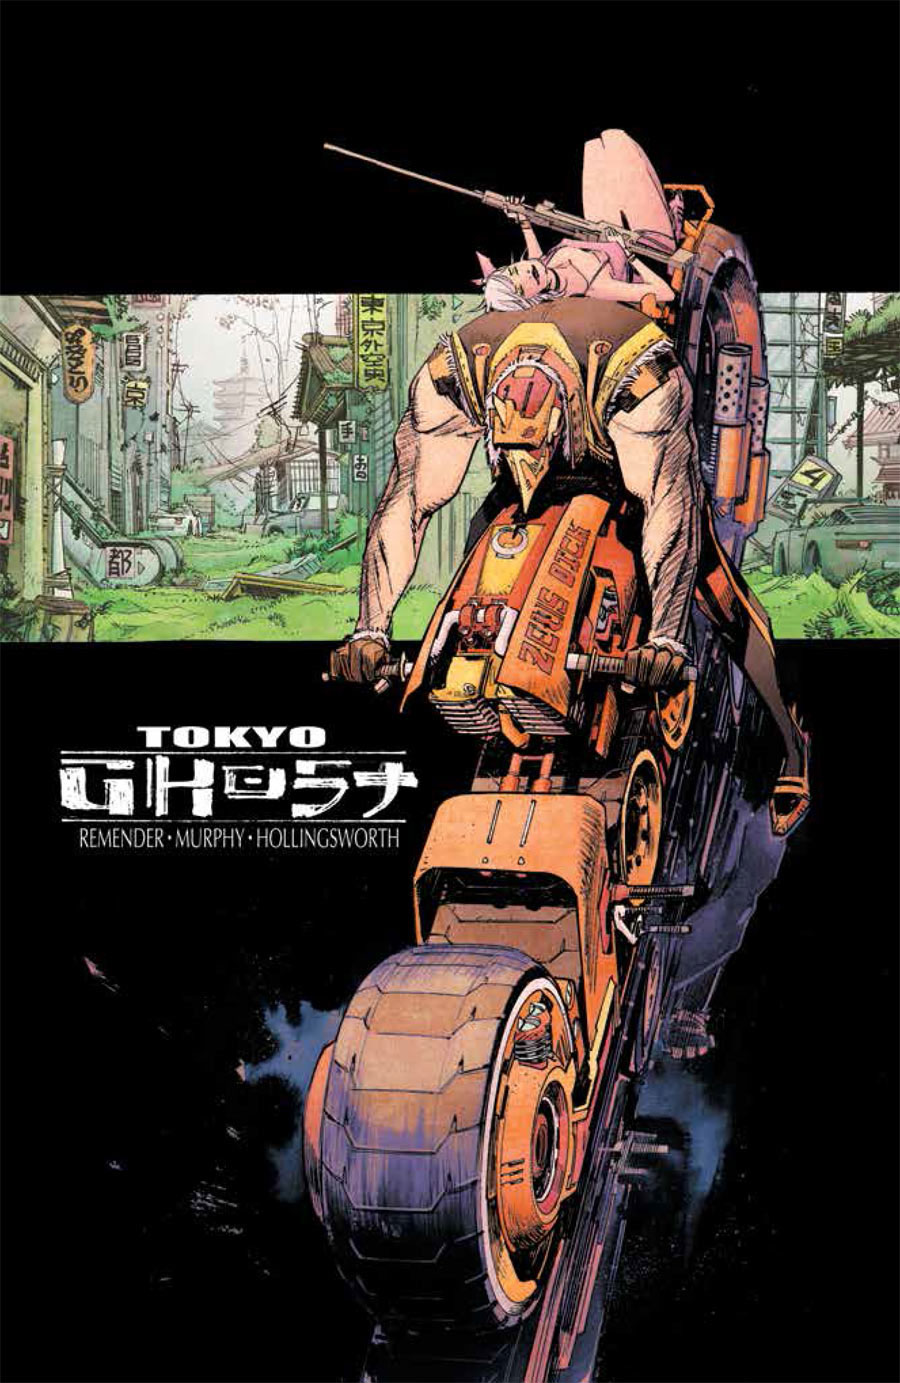 TokyoGhost-Unedited-Review-PDF-1-fcd0b